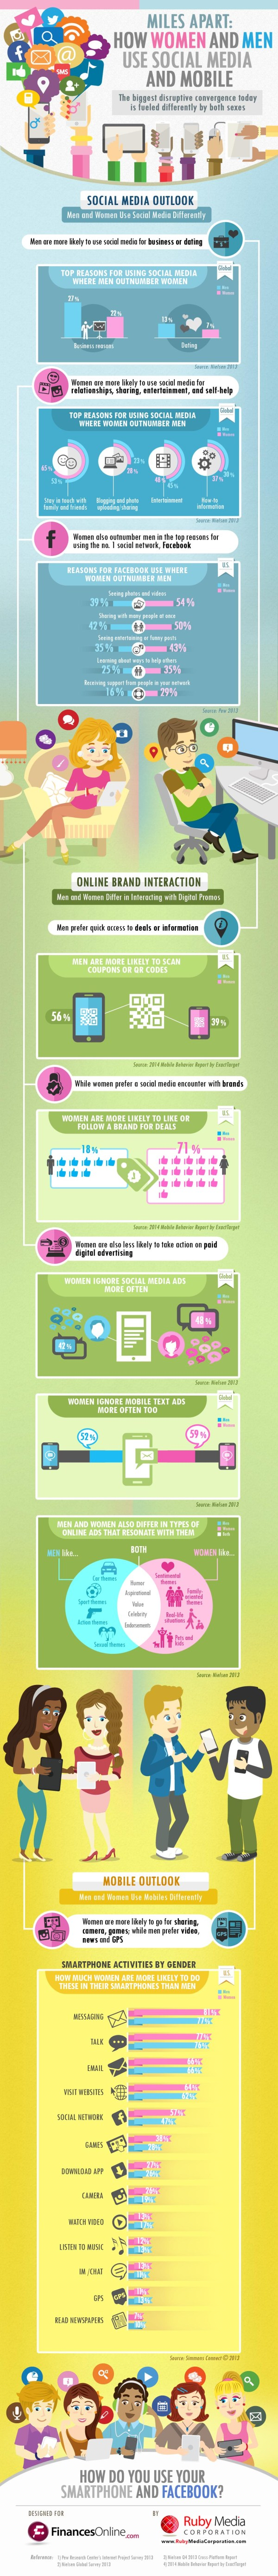 How We Use Smartphones & Facebook: Women Play More Games, Men Use QR Codes